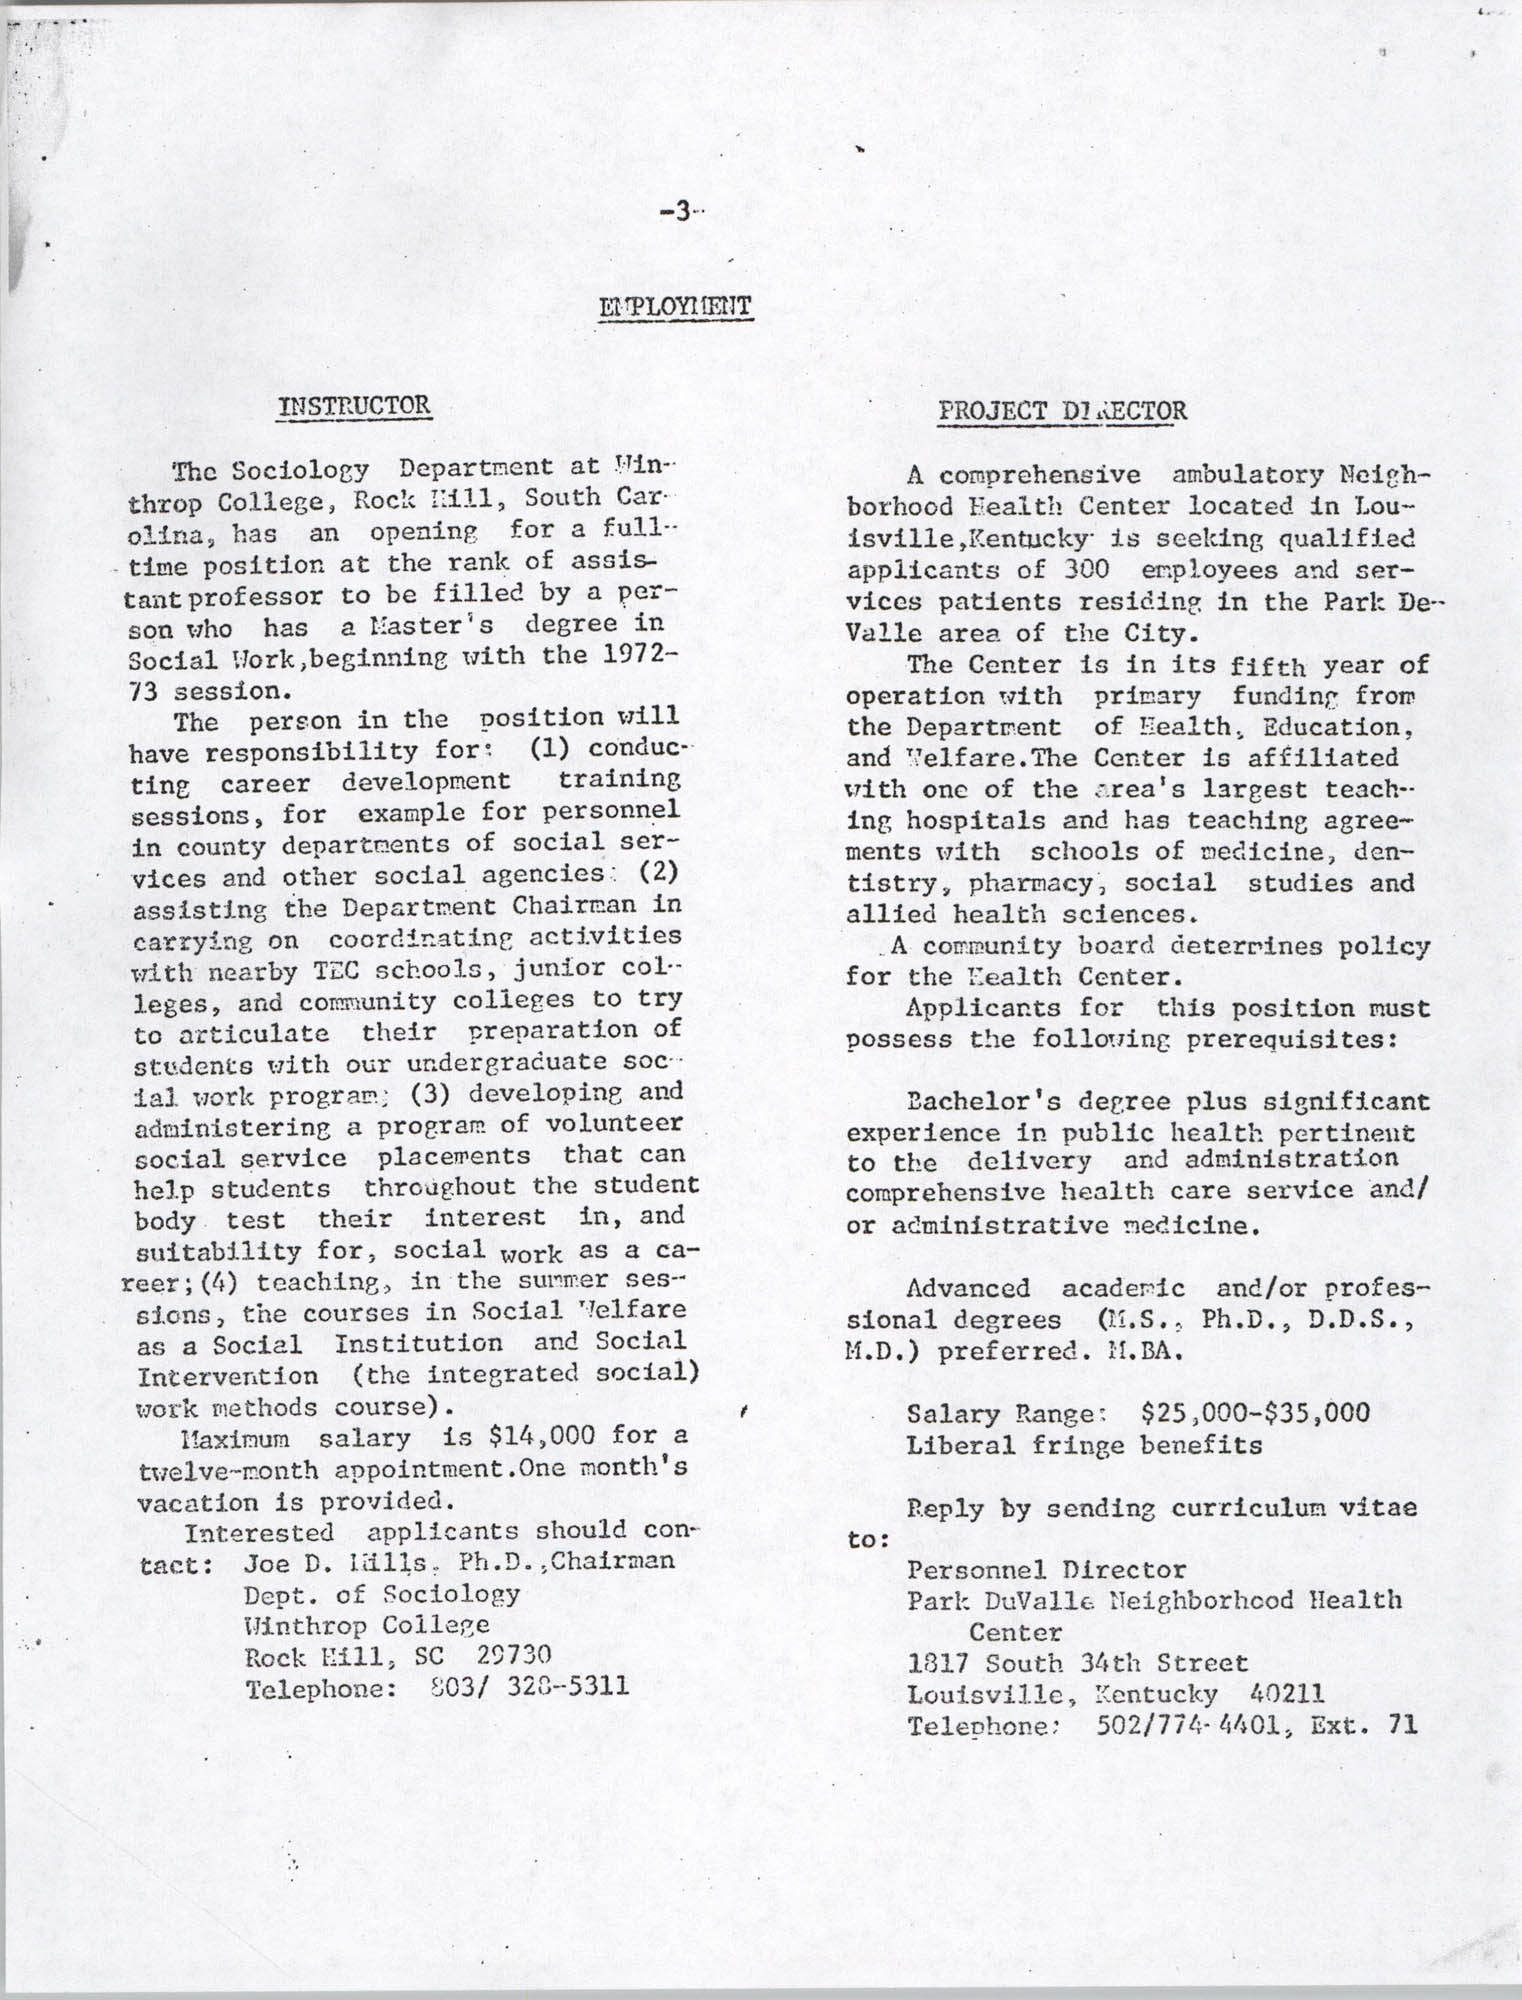 Black Educators Council for Human Services, Volume 1, Number 1, Page 3